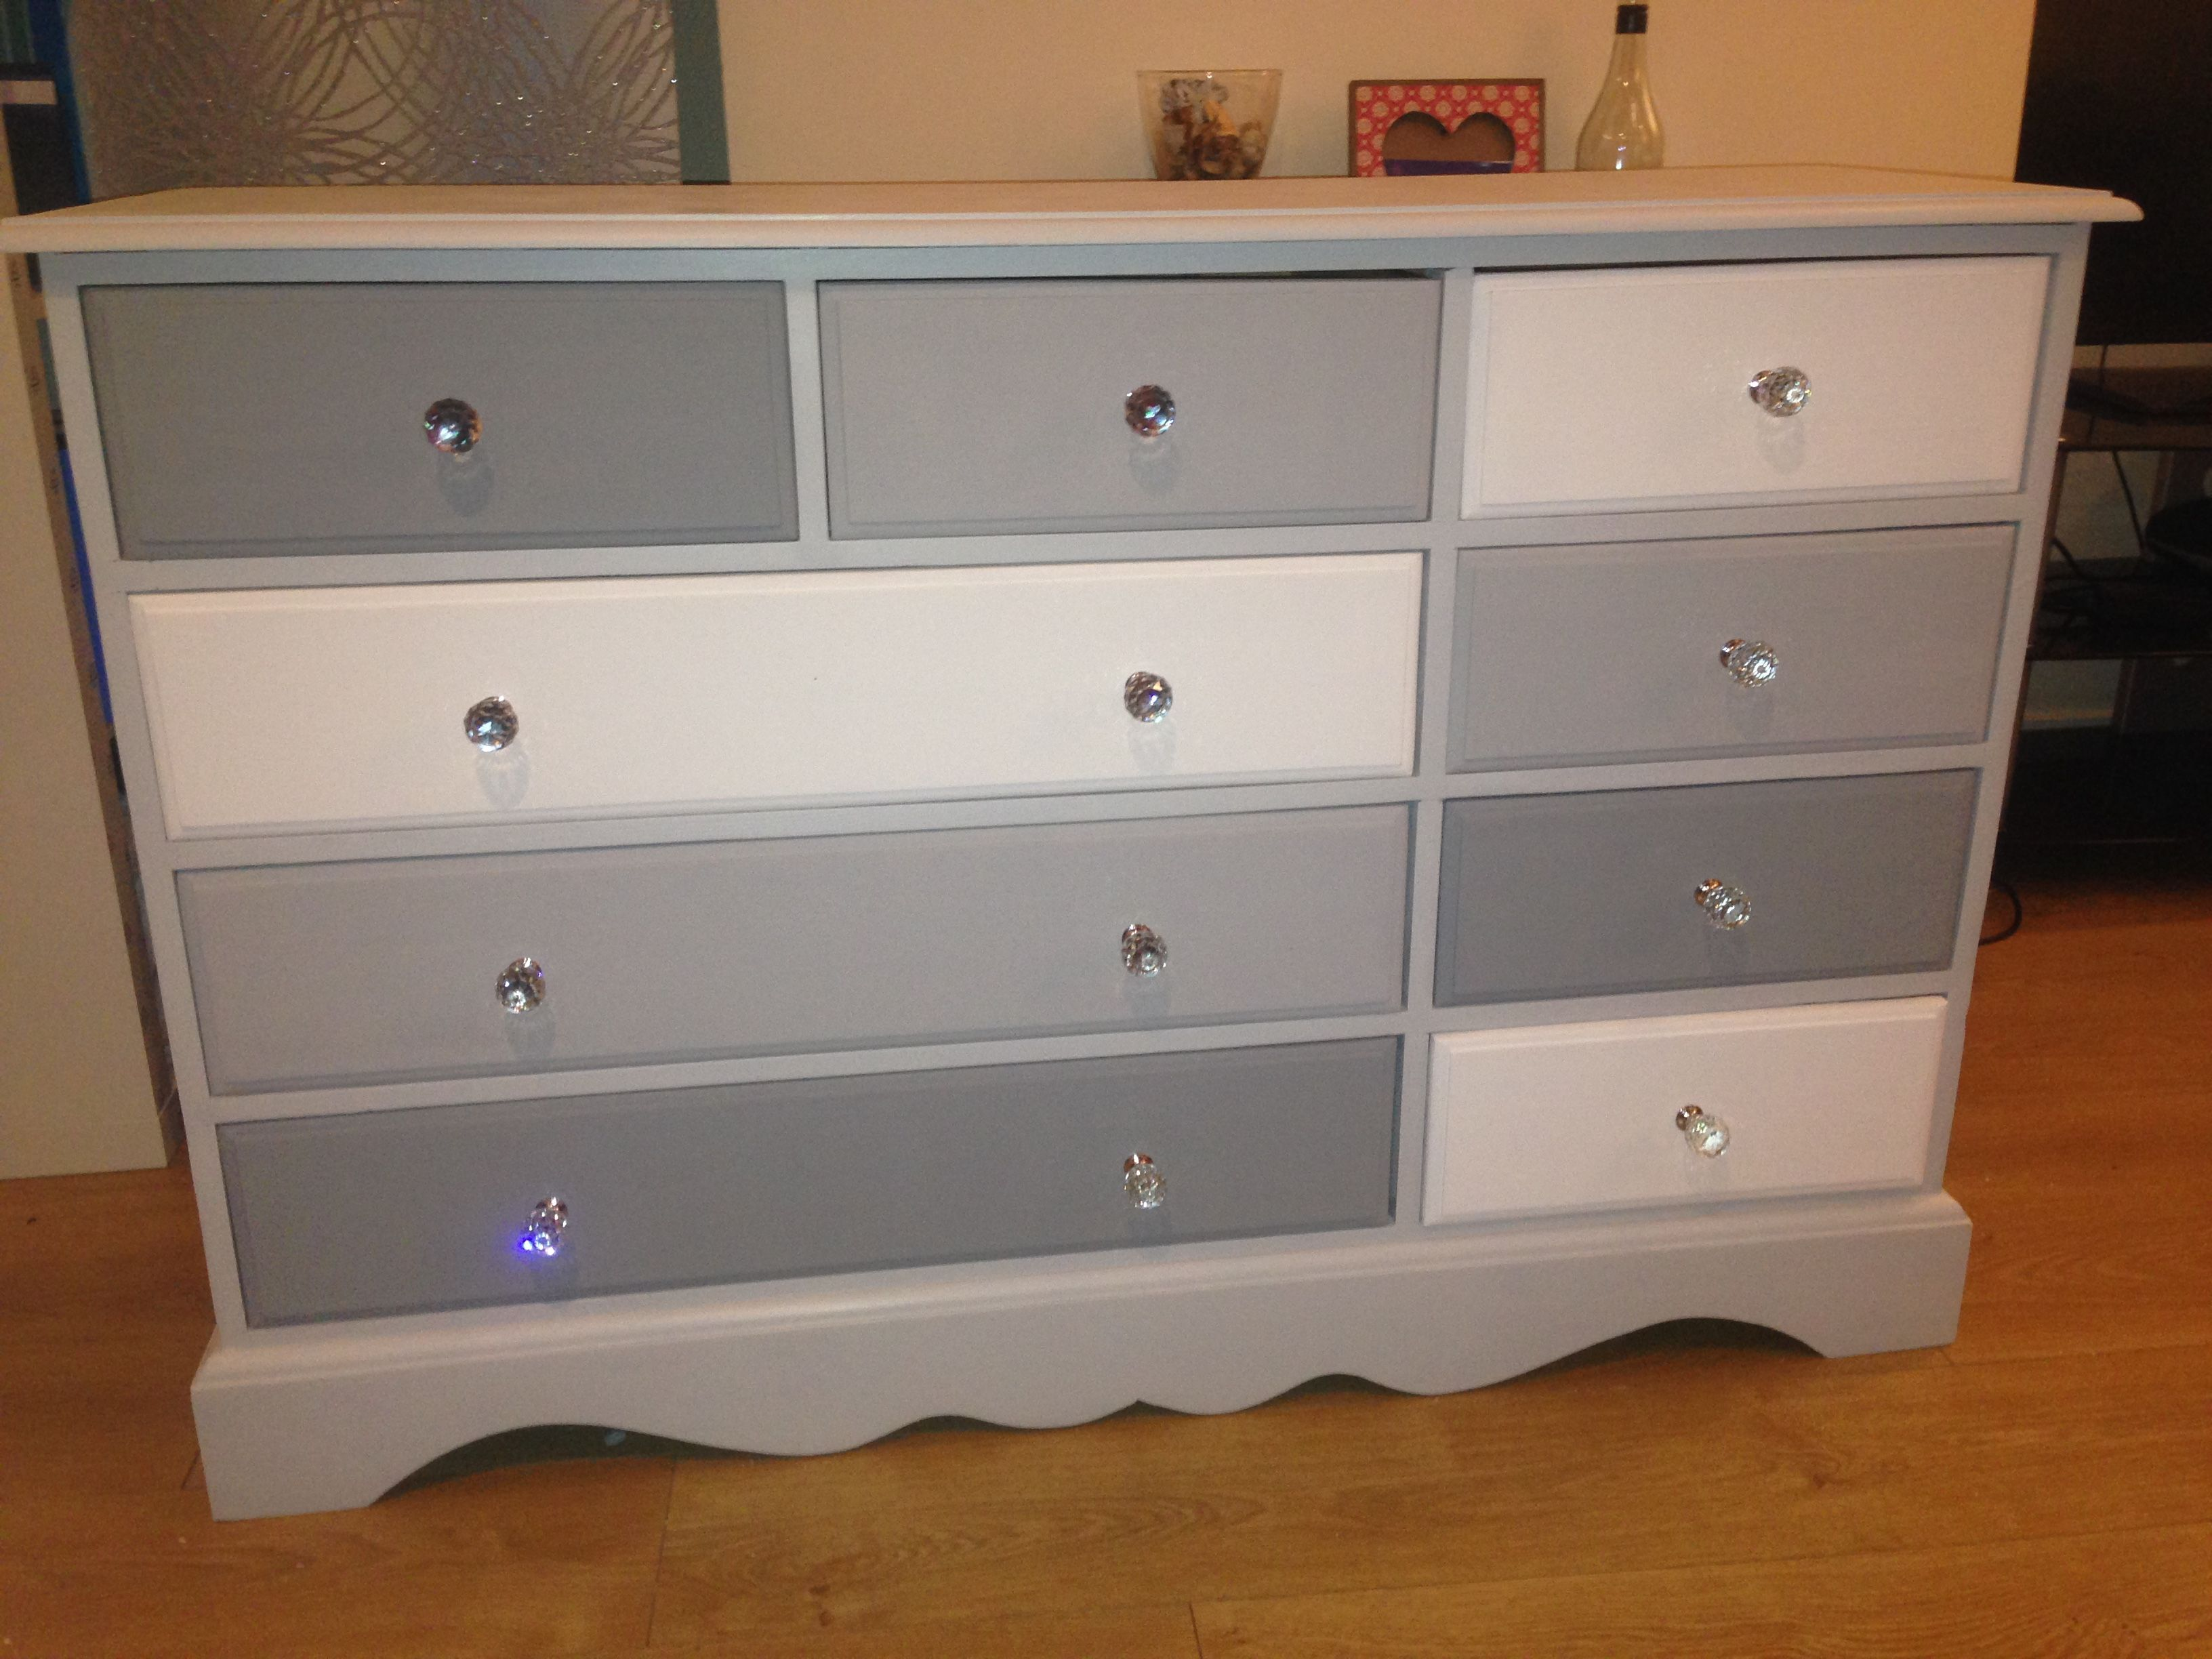 Upcycled Furniture: Chest Of Drawers In Different Shades Of Grey And  Finished With Glass Handles